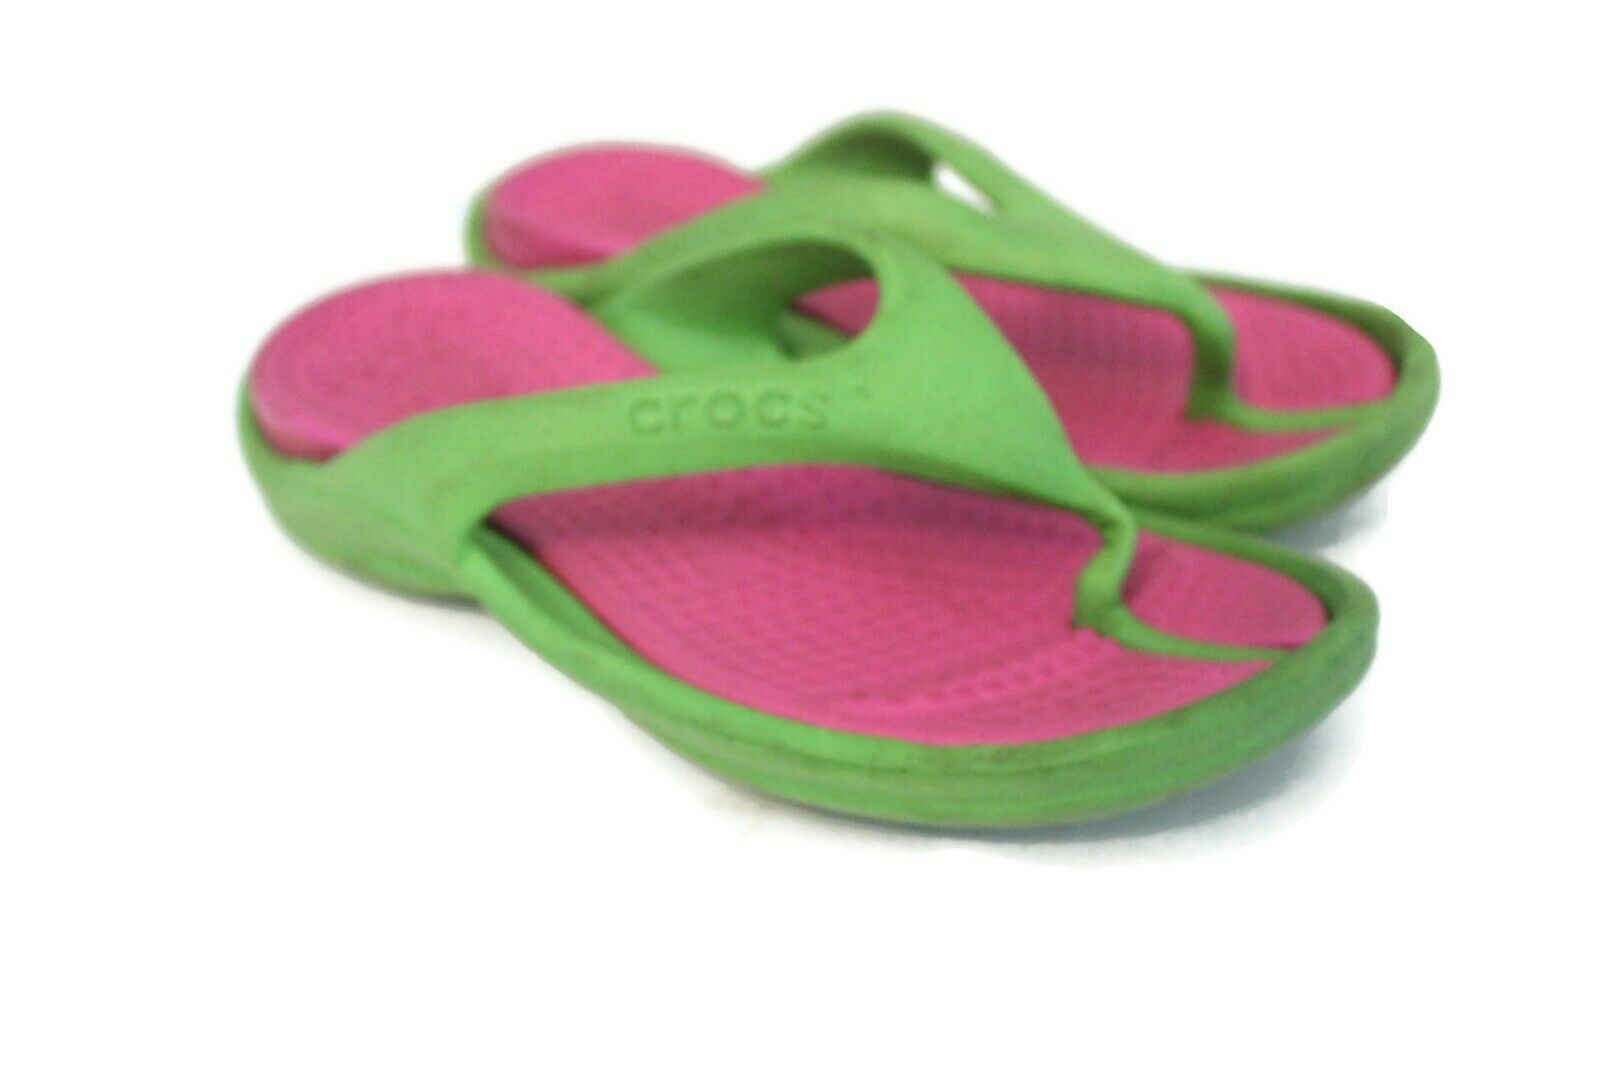 Primary image for Crocs Slip On Flip Flops Rubber Sandals Sz w4 m2 Neon Green Hot Pink Unisex